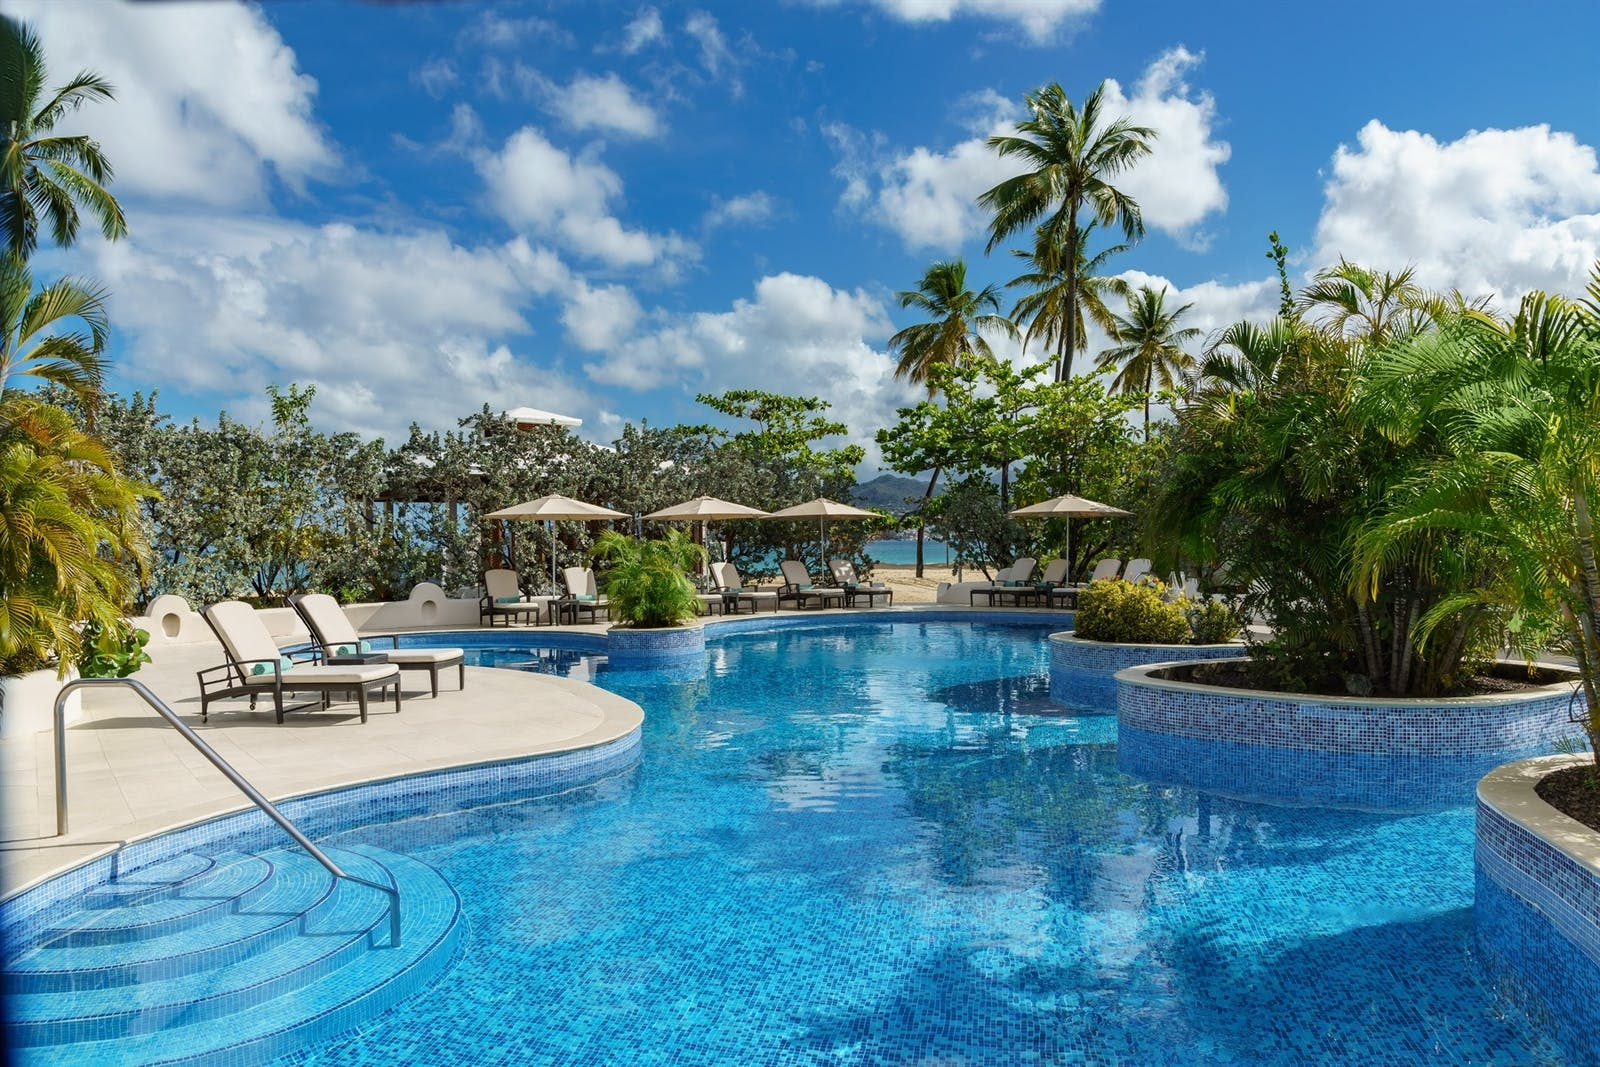 Oasis Swimming Pool with Swim up Jacuzzi at Spice Island Beach Resort, Grenada